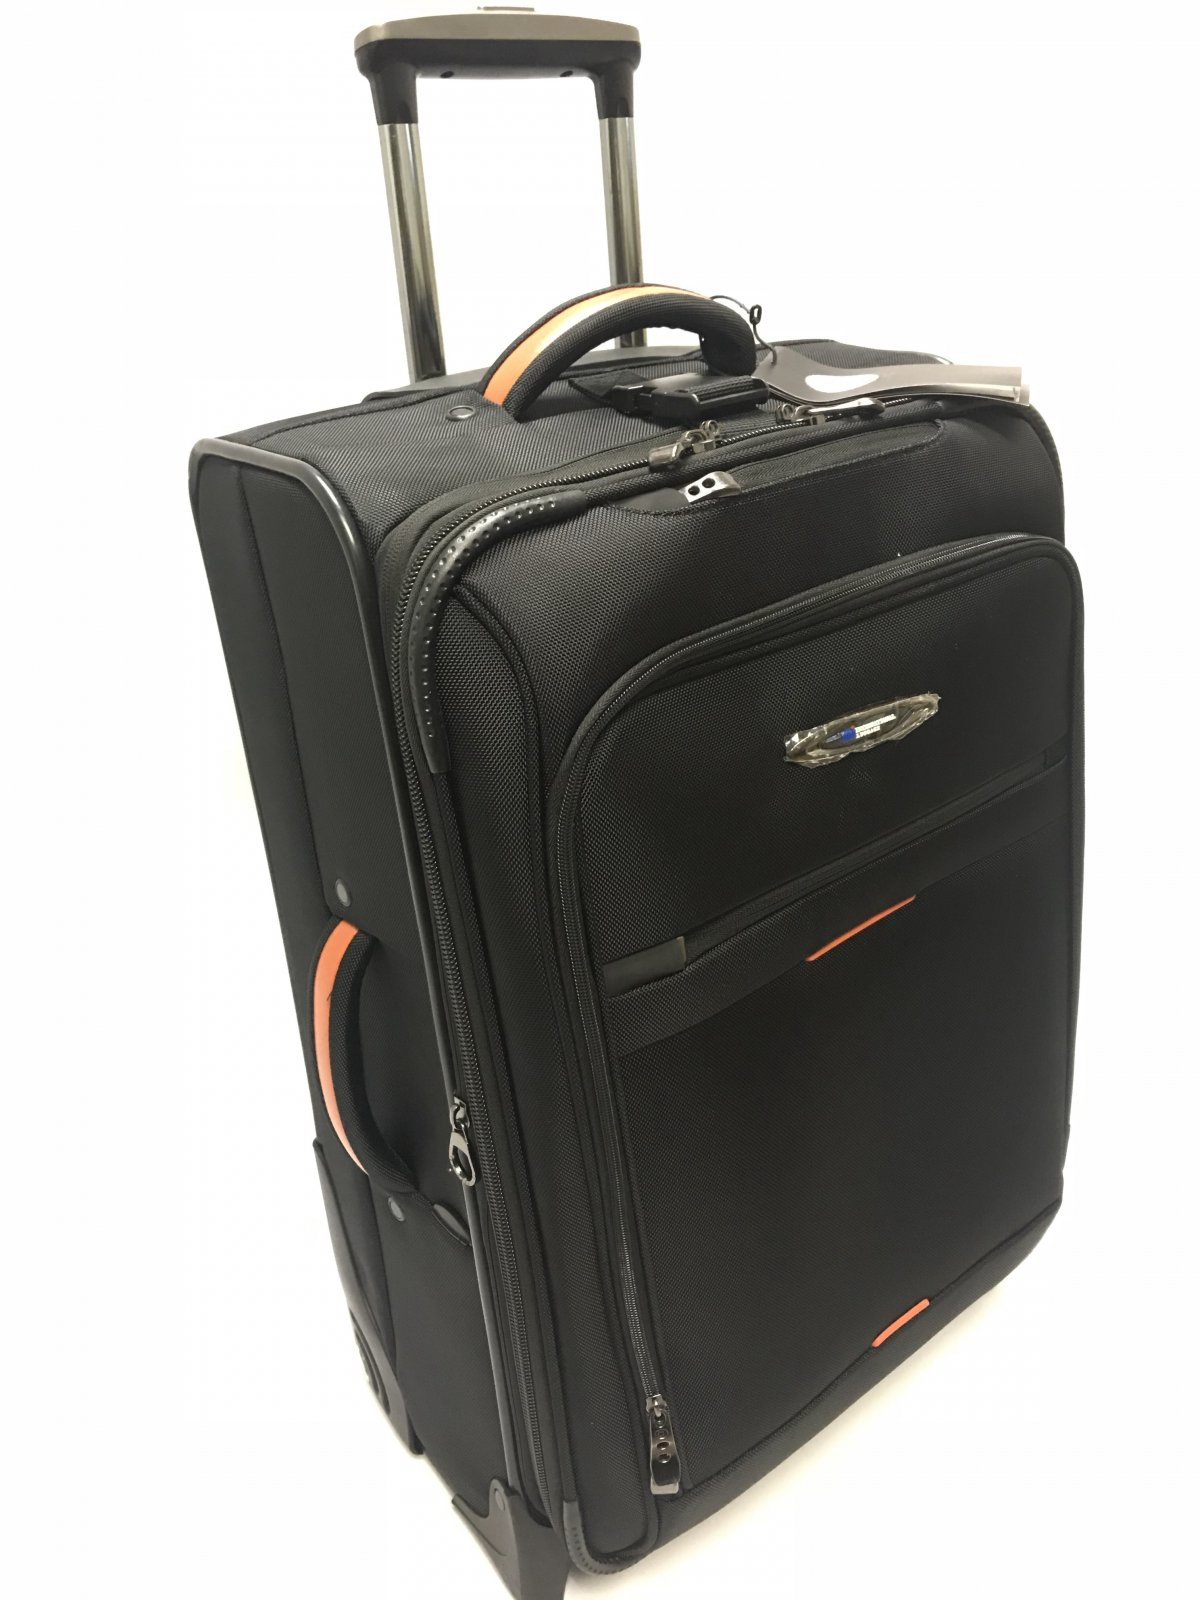 25 Checkable Black Everest Collection with Ballistic Polyester (international travel dimensions) by International Luggage